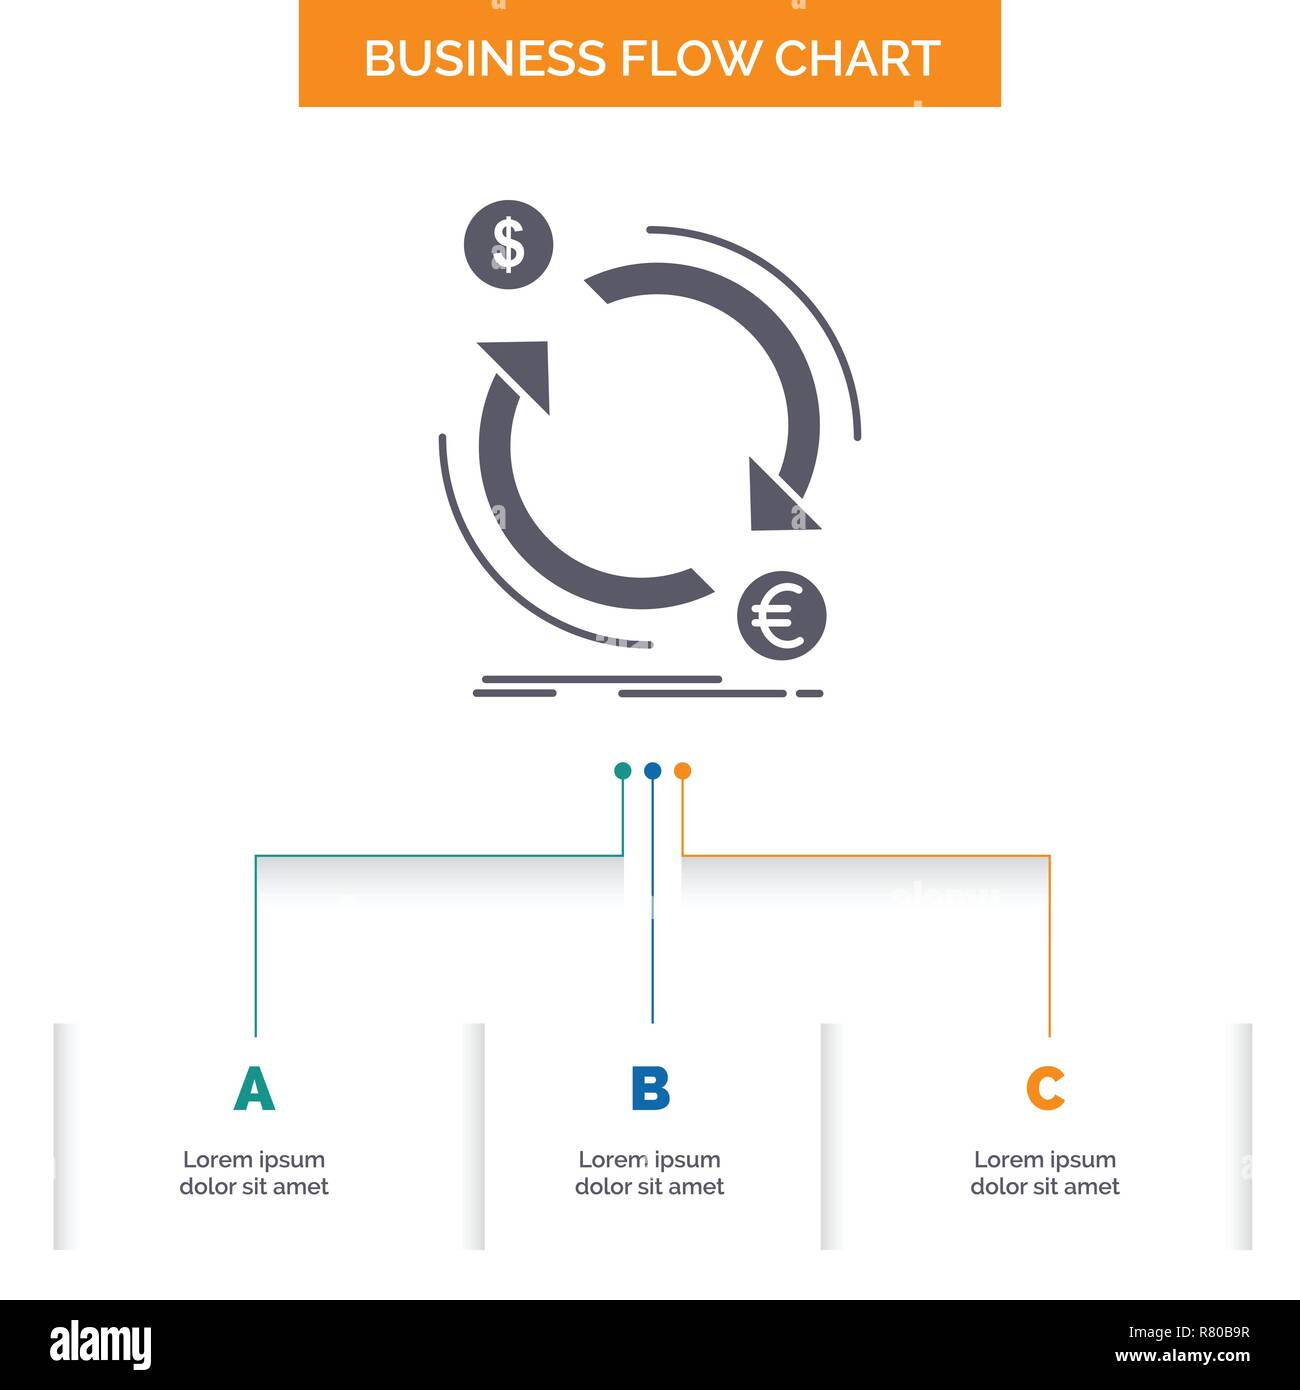 hight resolution of exchange currency finance money convert business flow chart design with 3 steps glyph icon for presentation background template place for text